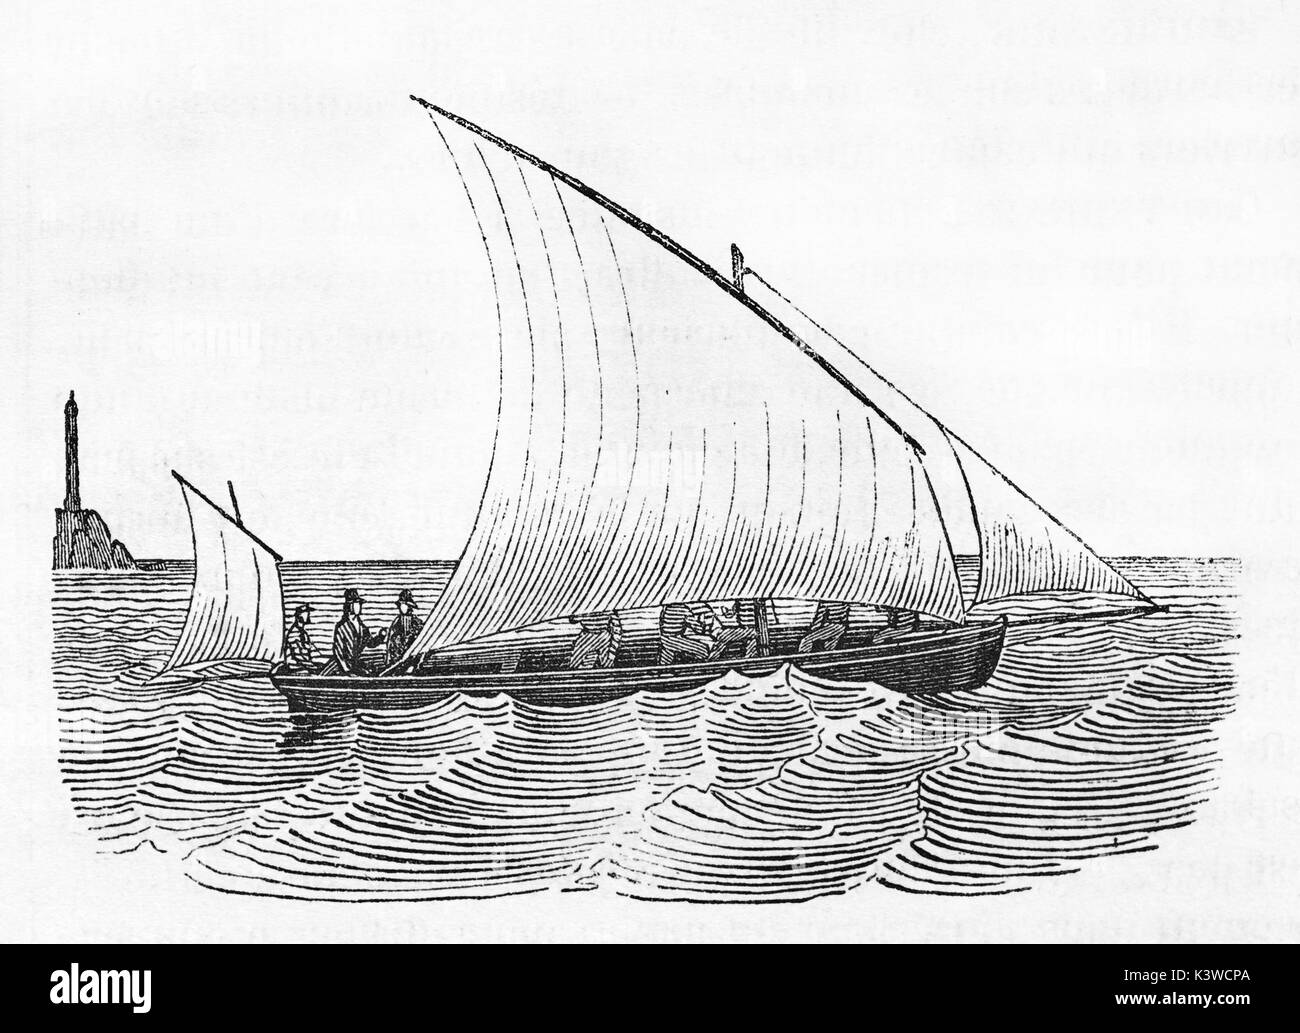 Old illustration of a Guigne, flat-bottomed sailboat. By unidentified author, published on Magasin Pittoresque, Paris, 1841 - Stock Image